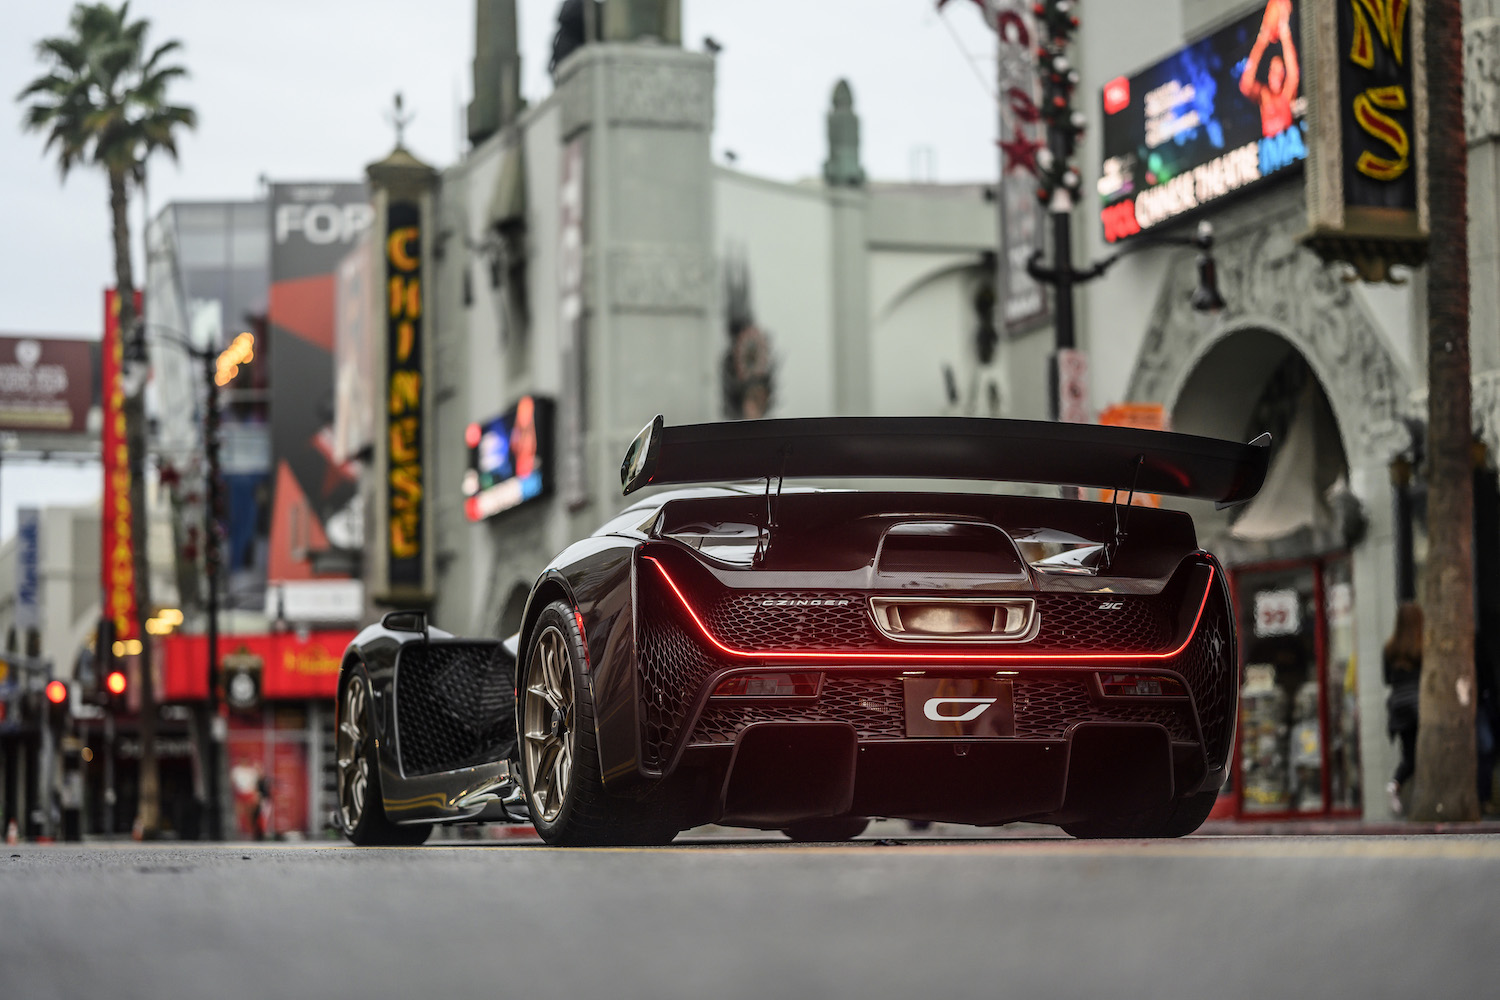 Czinger 21C 3D print hybrid supercar rear three-quarter in hollywood